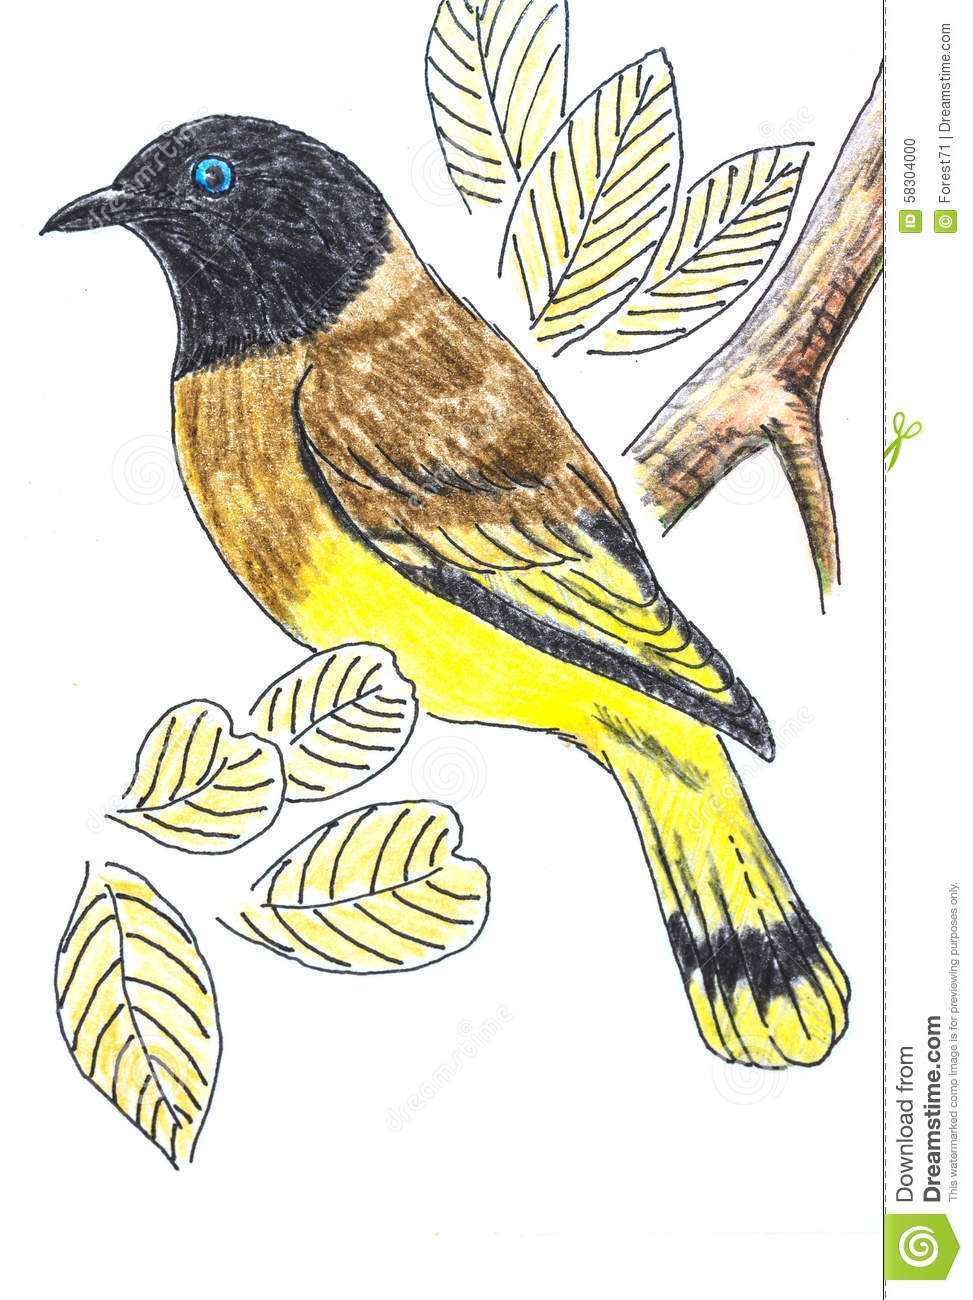 Black-headed Bulbul Bird Drawing Stock Illustration - Illustration Of Drawing Illustration ...